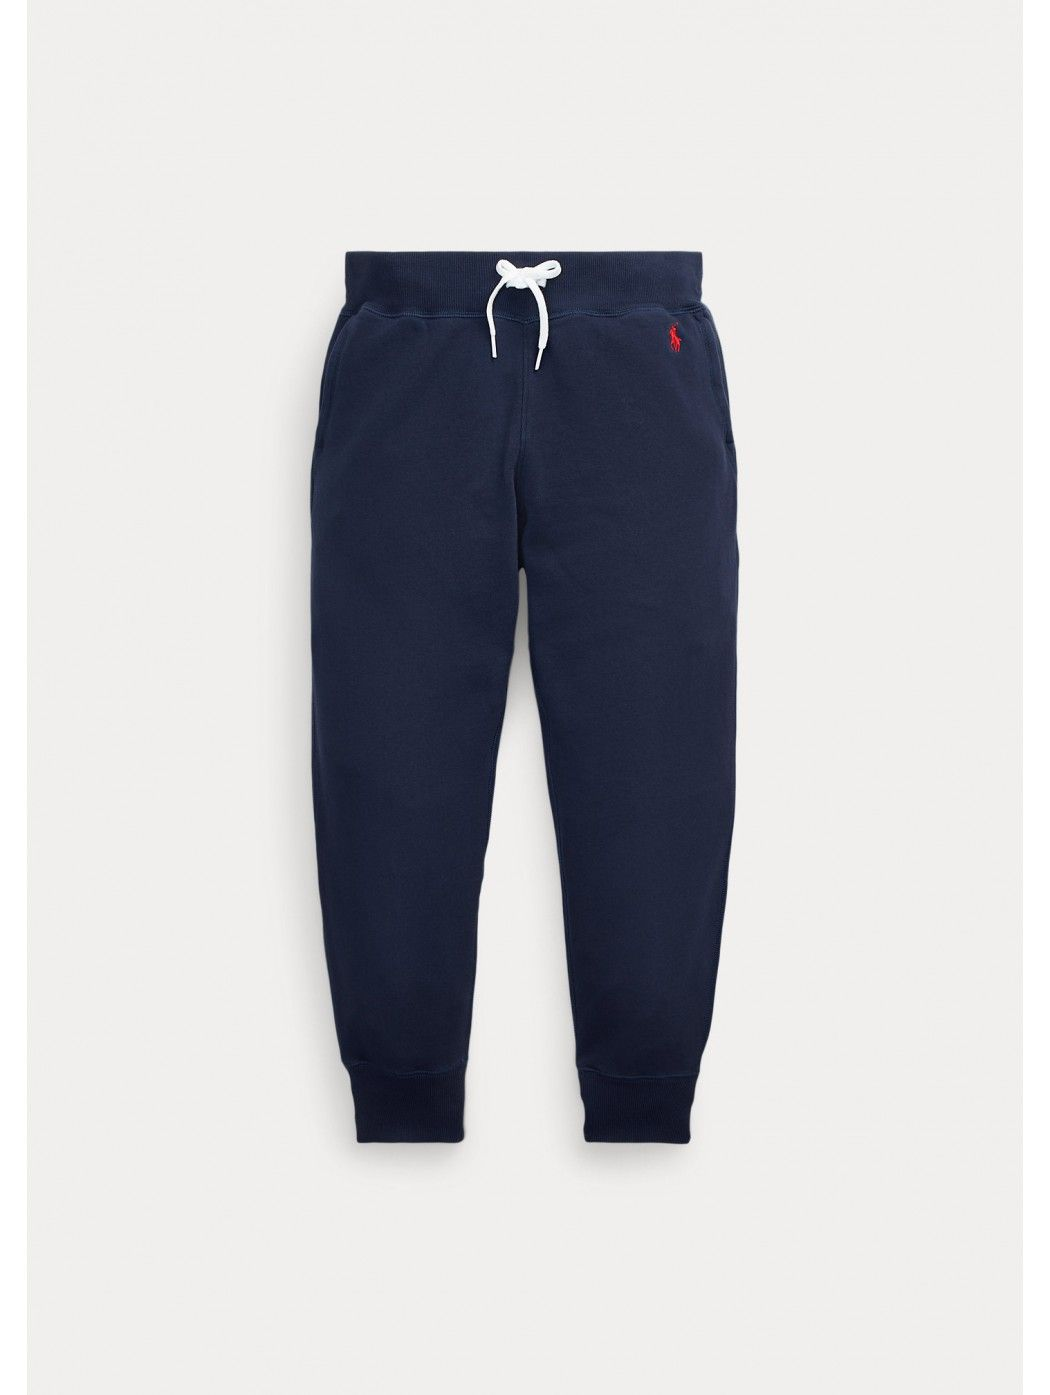 Pantaloni da jogging in felpa POLO RALPH LAUREN DONNA 211794397 003